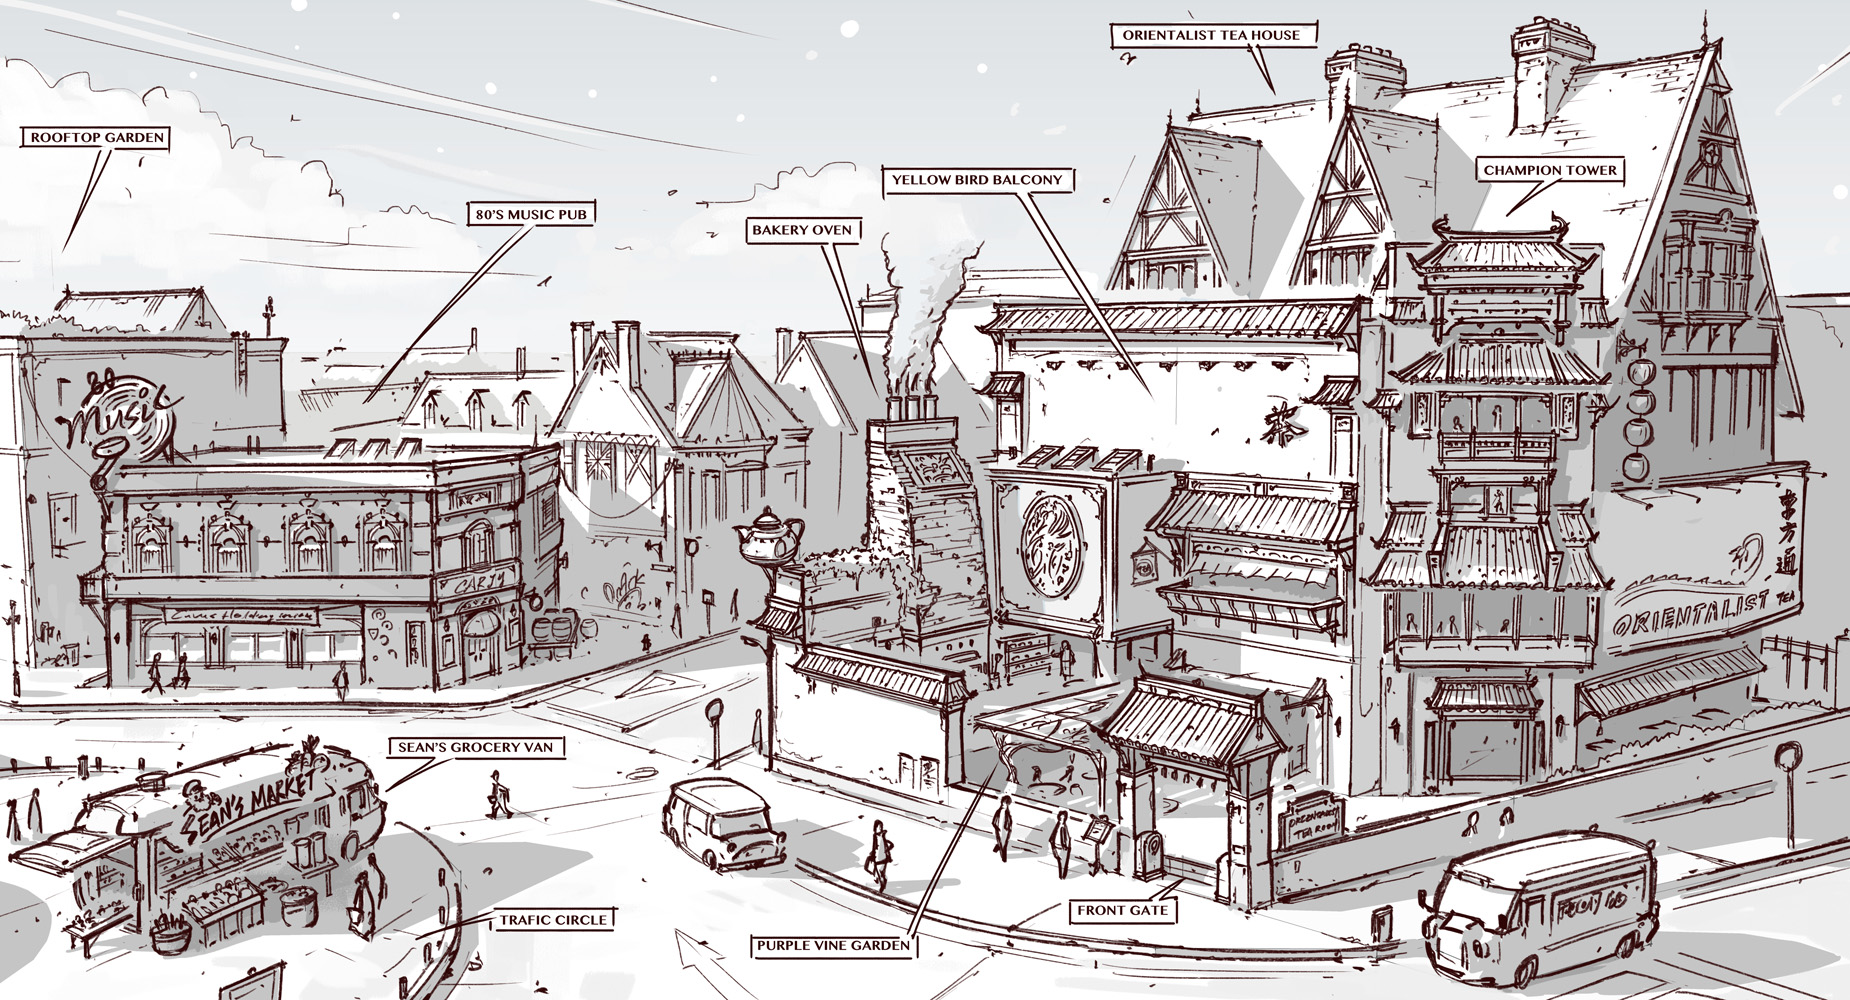 Town Design - Tearoom, music pub and vending van by alantsuei